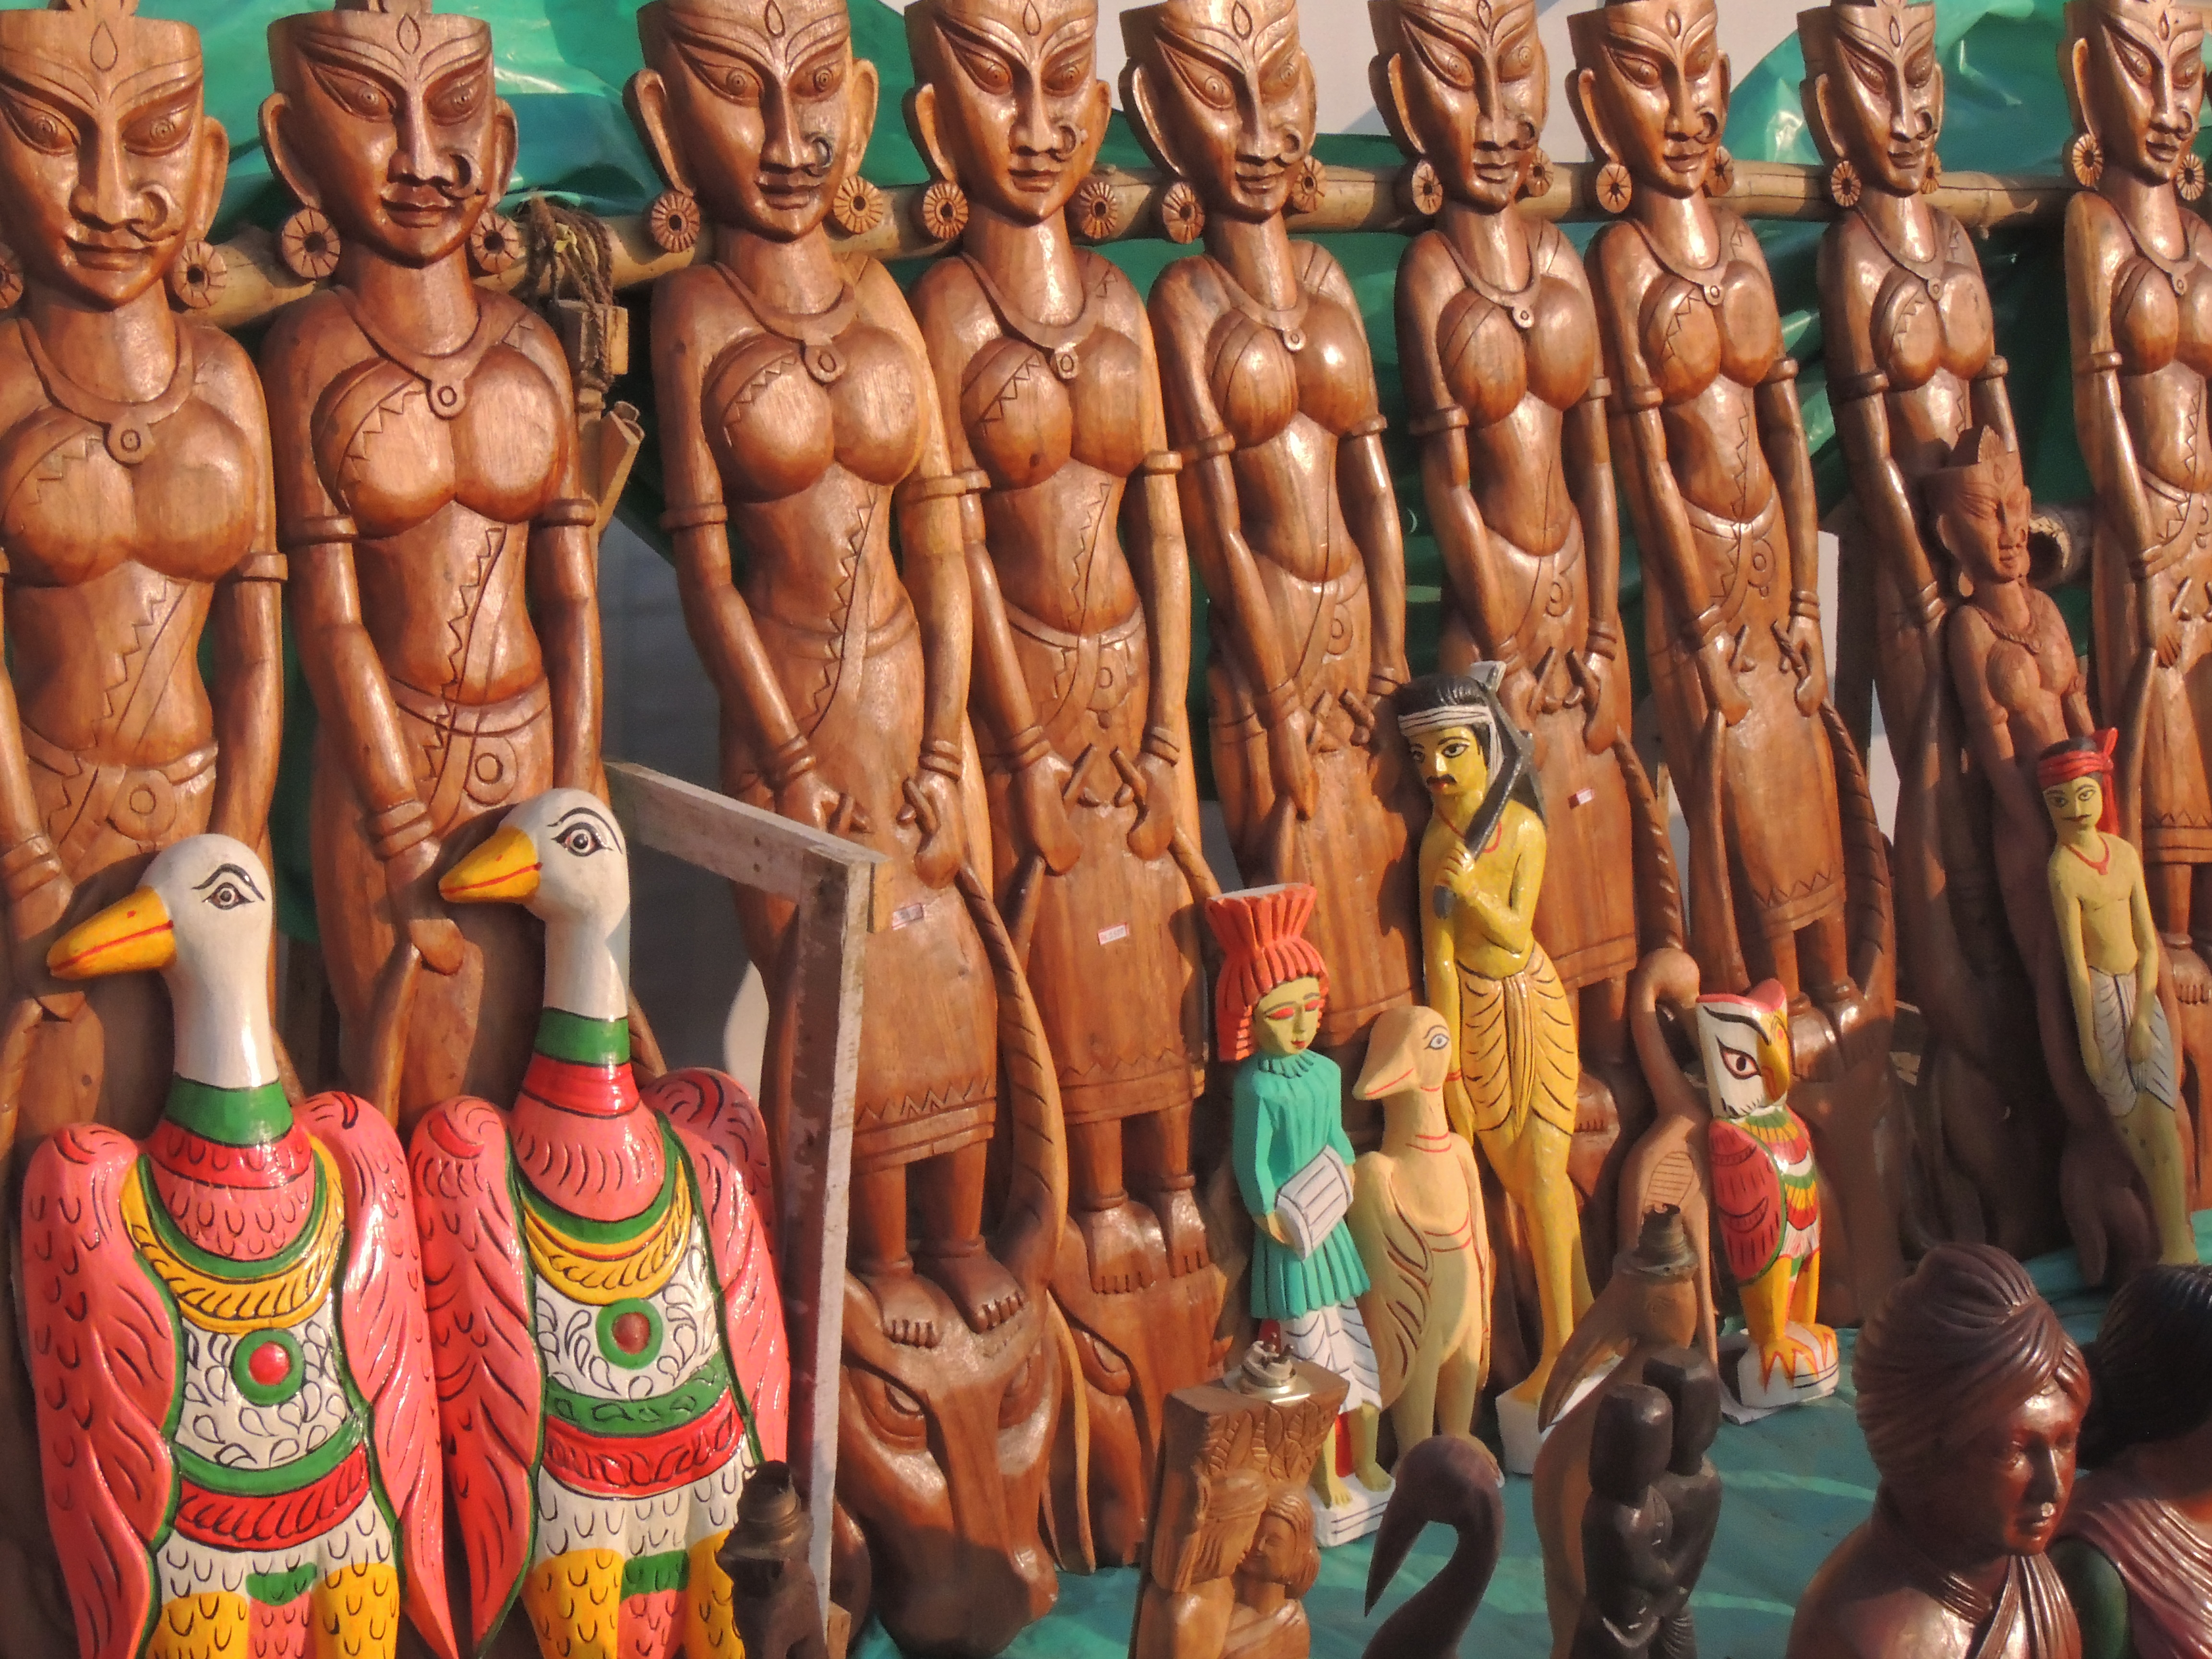 Quirky: Wood carvings from Bengal